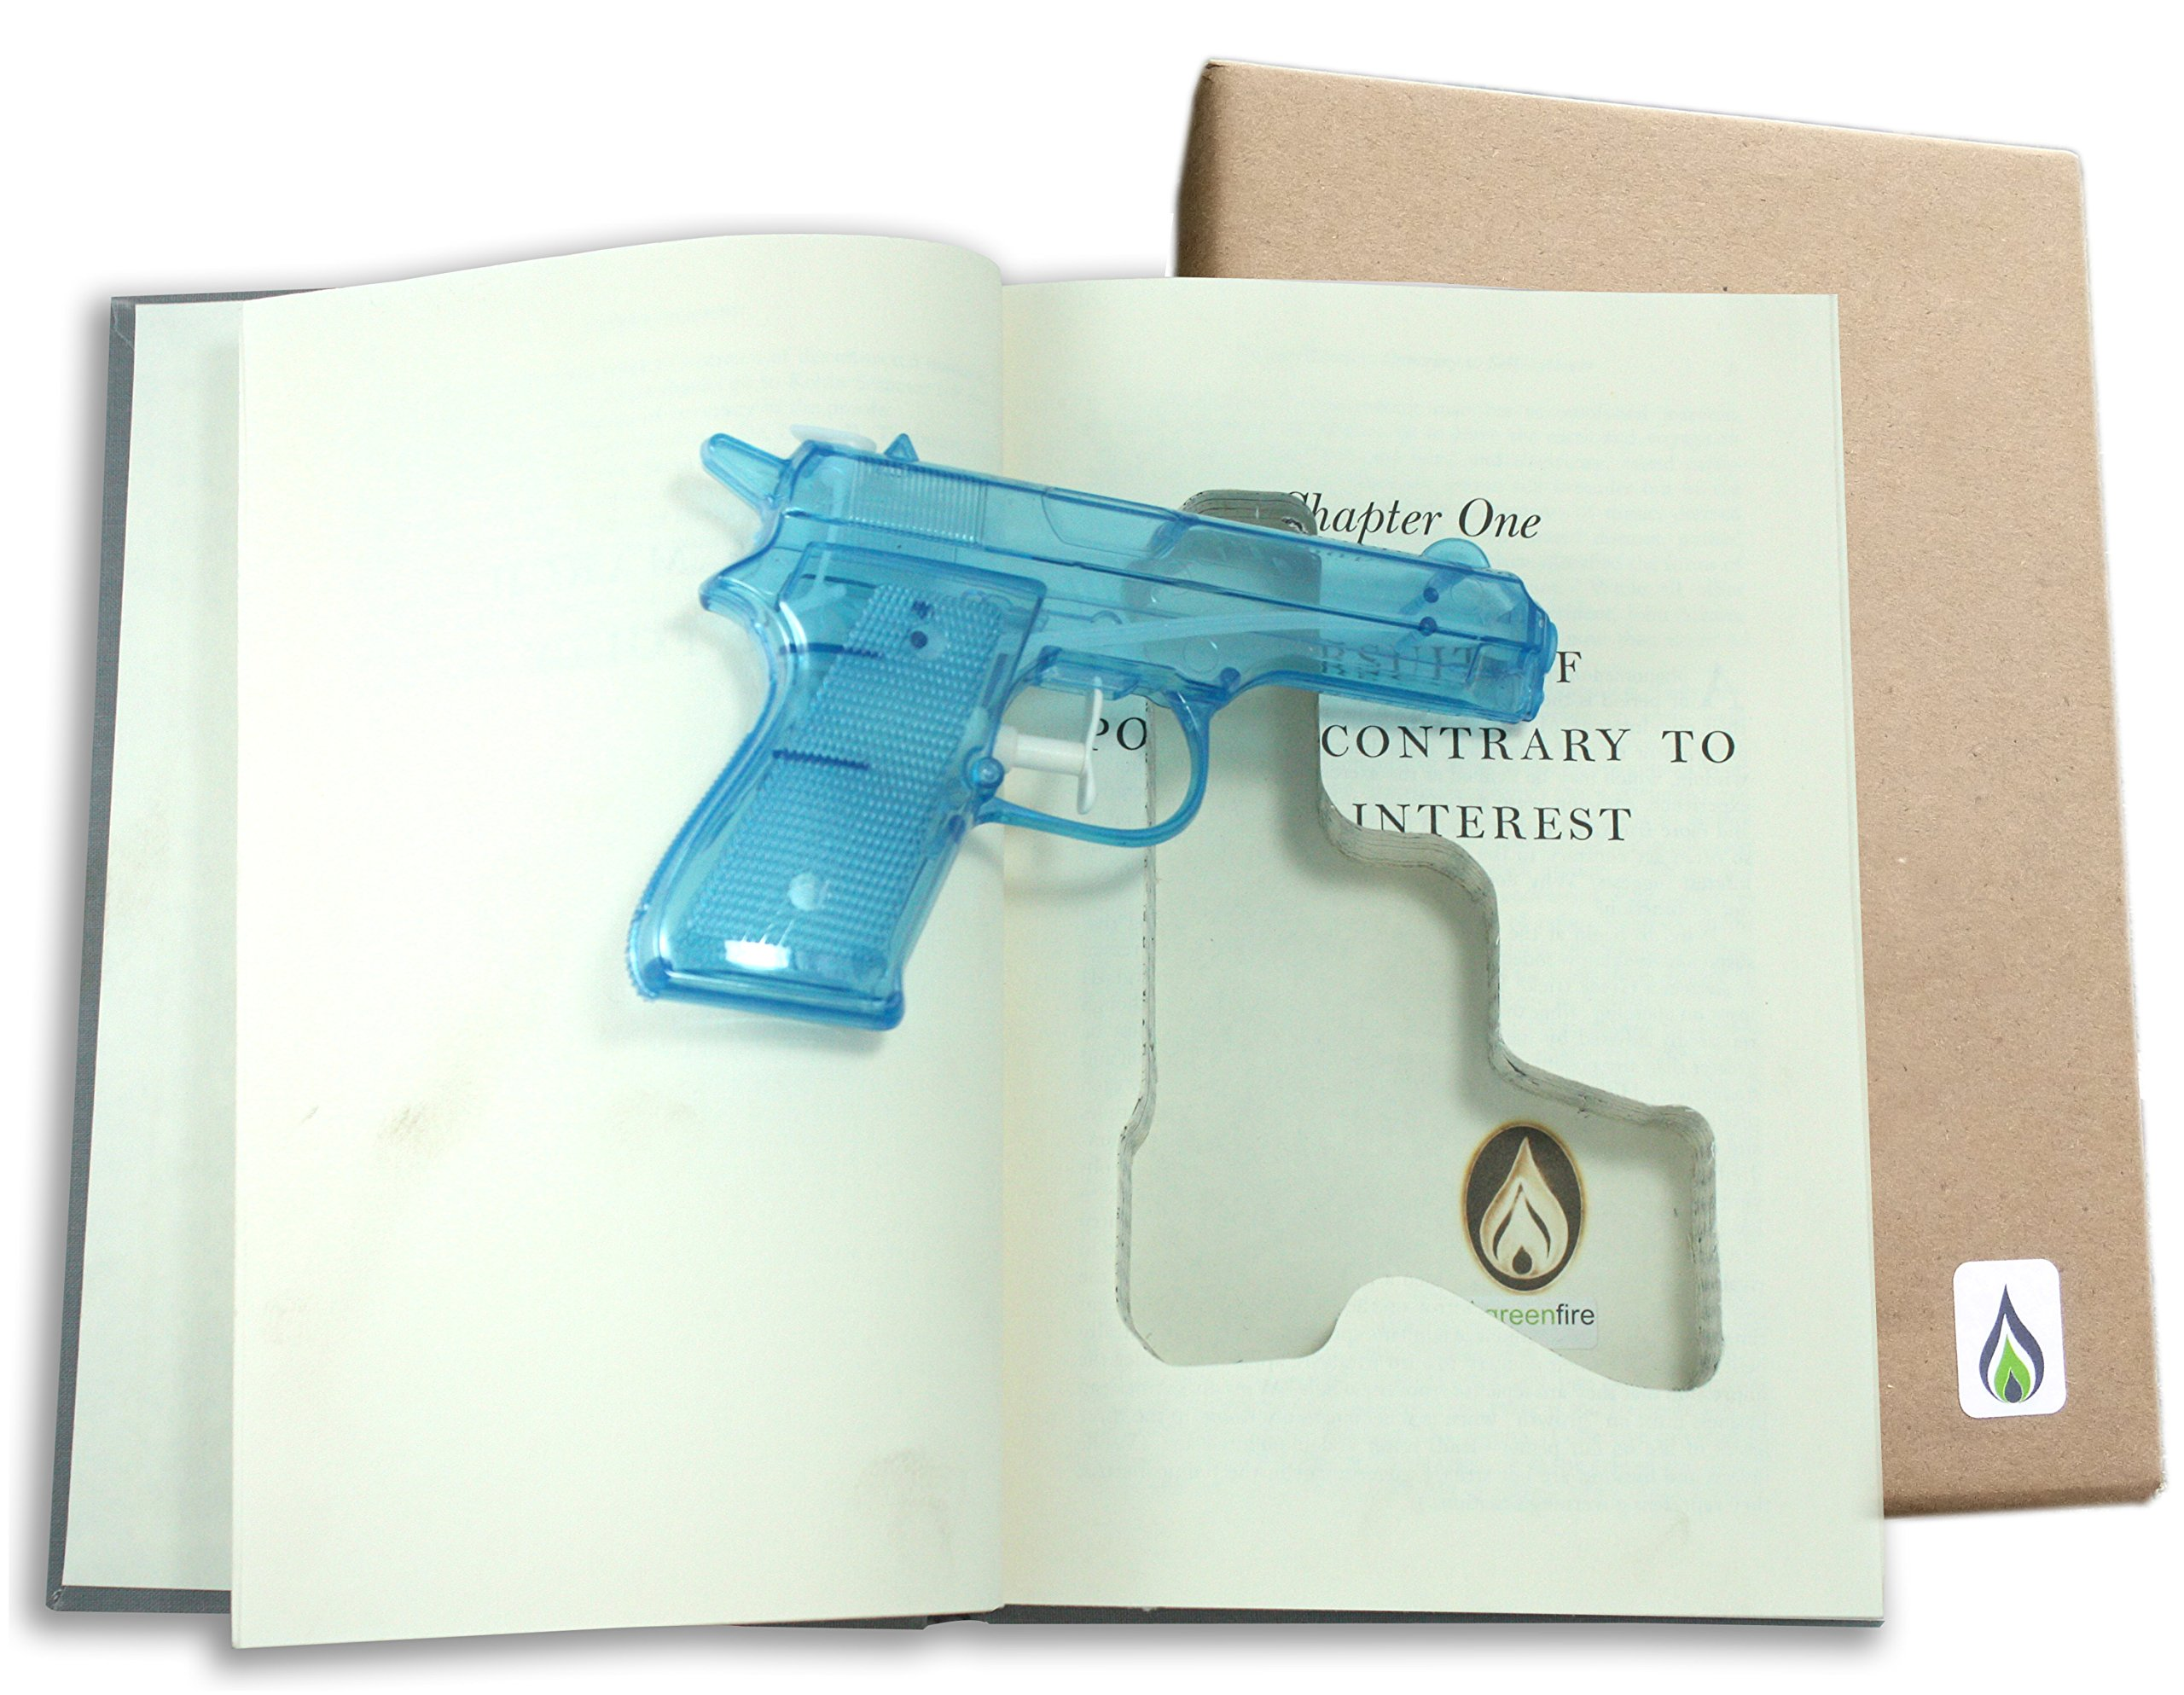 SneakyBooks Recycled Hollow Book Squirt Gun Diversion Safe (squirt gun included) by SneakyBooks